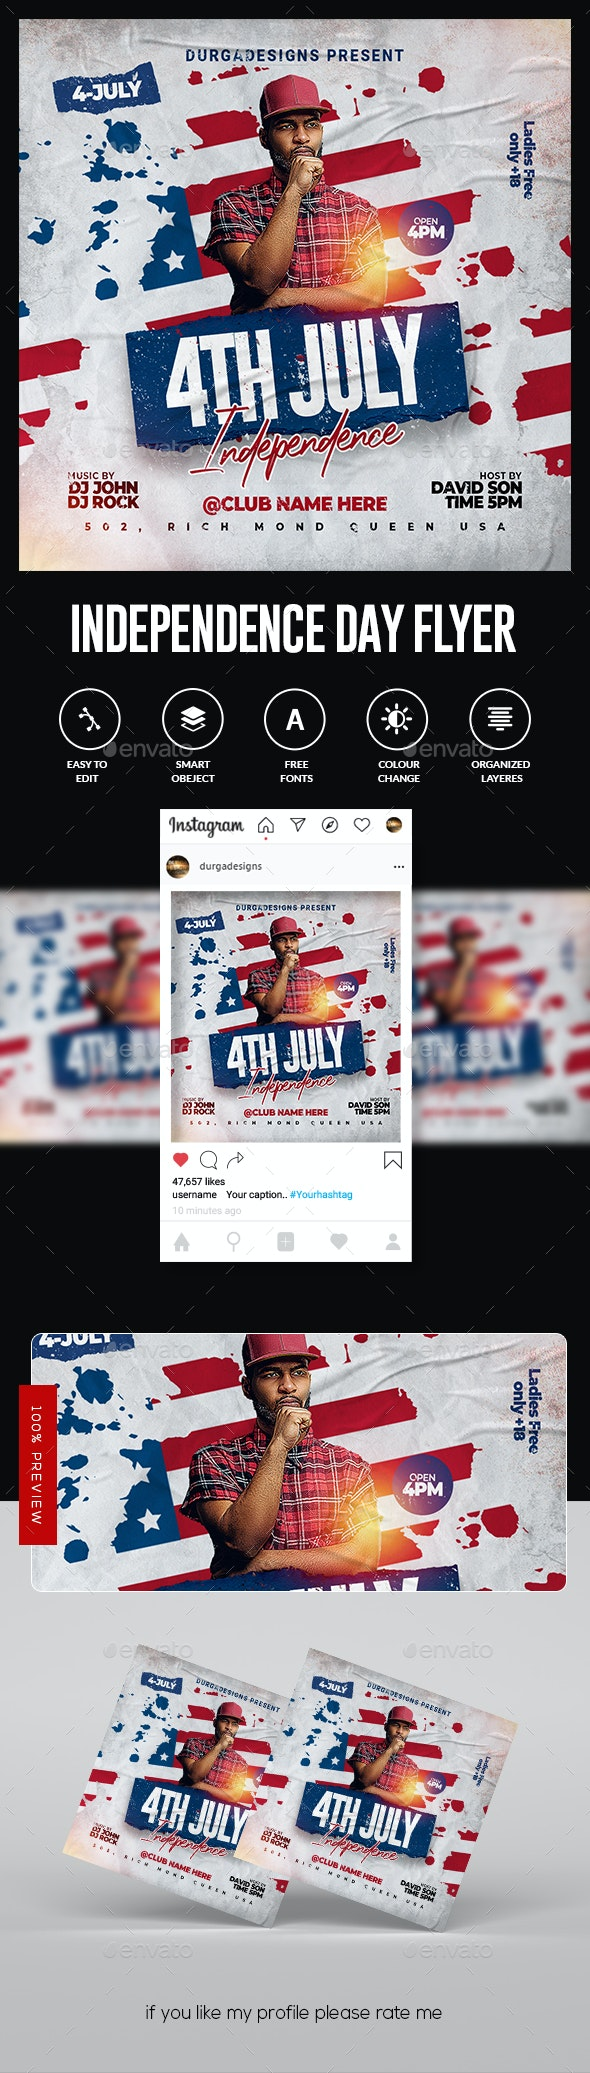 Independence Day Flyer - Flyers Print Templates